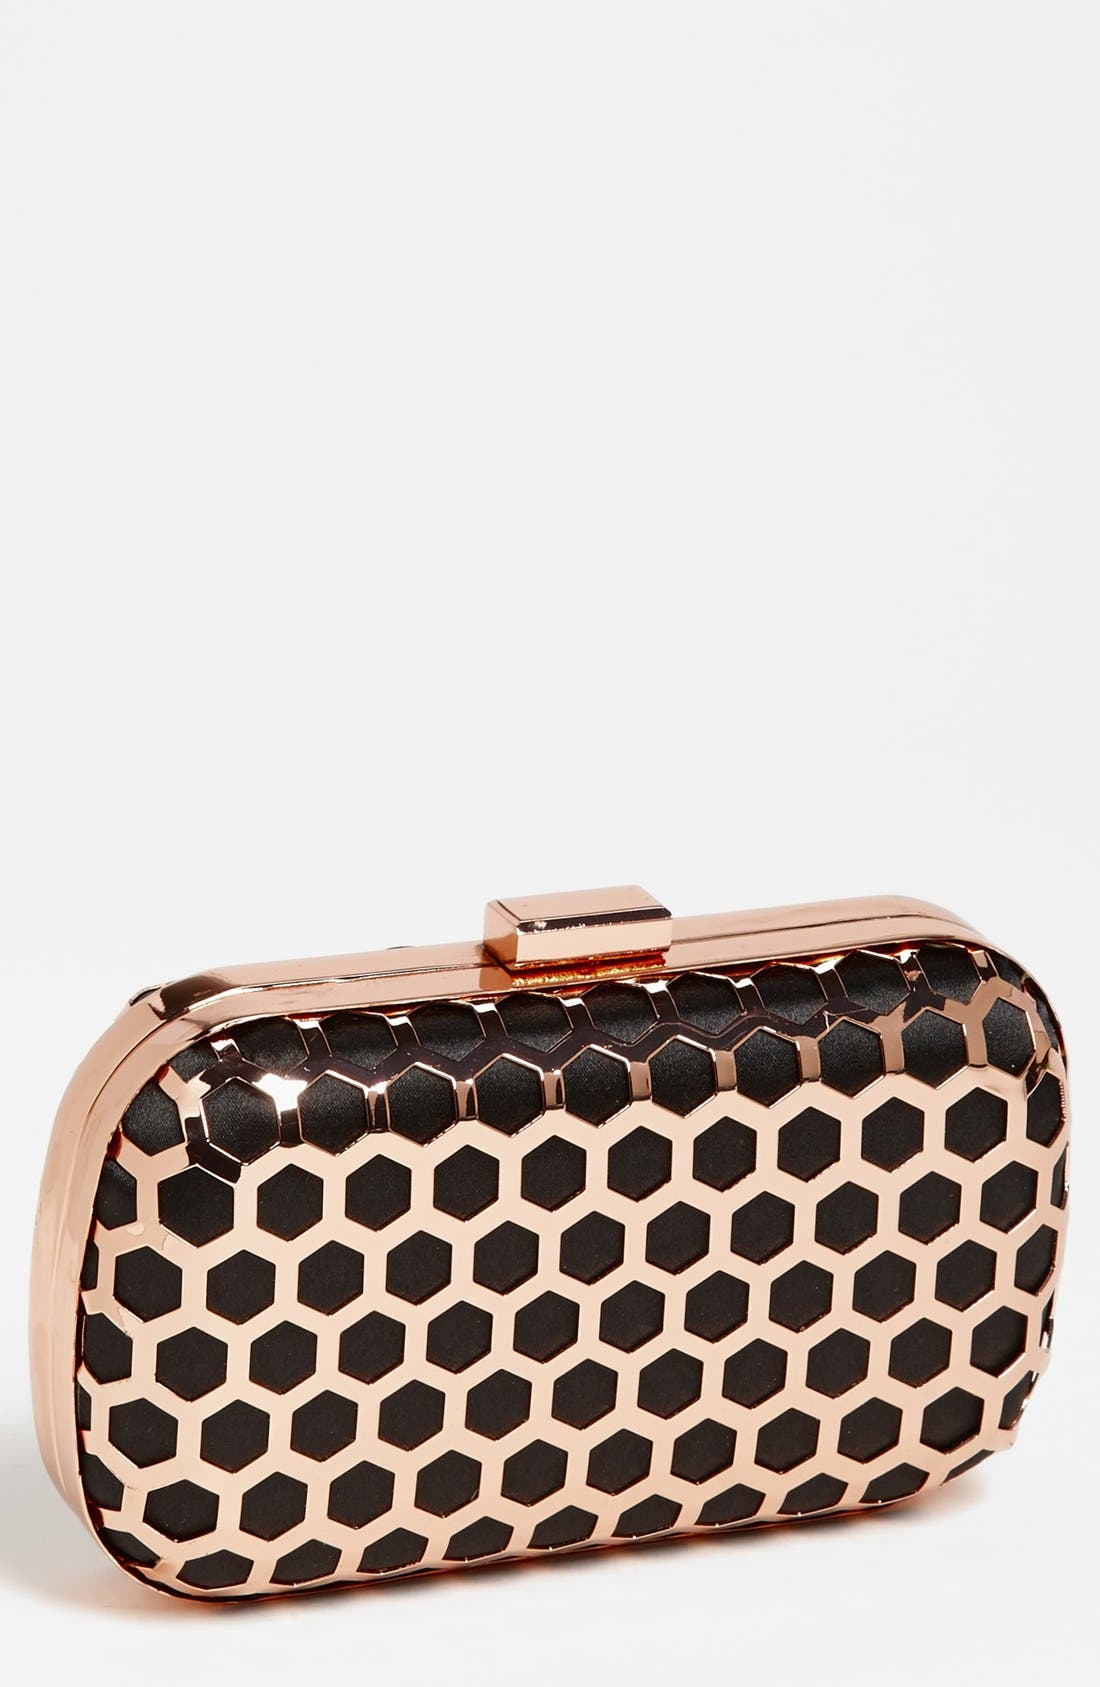 EXPRESSIONS NYC Hexagonal Box Clutch, Main, color, 001